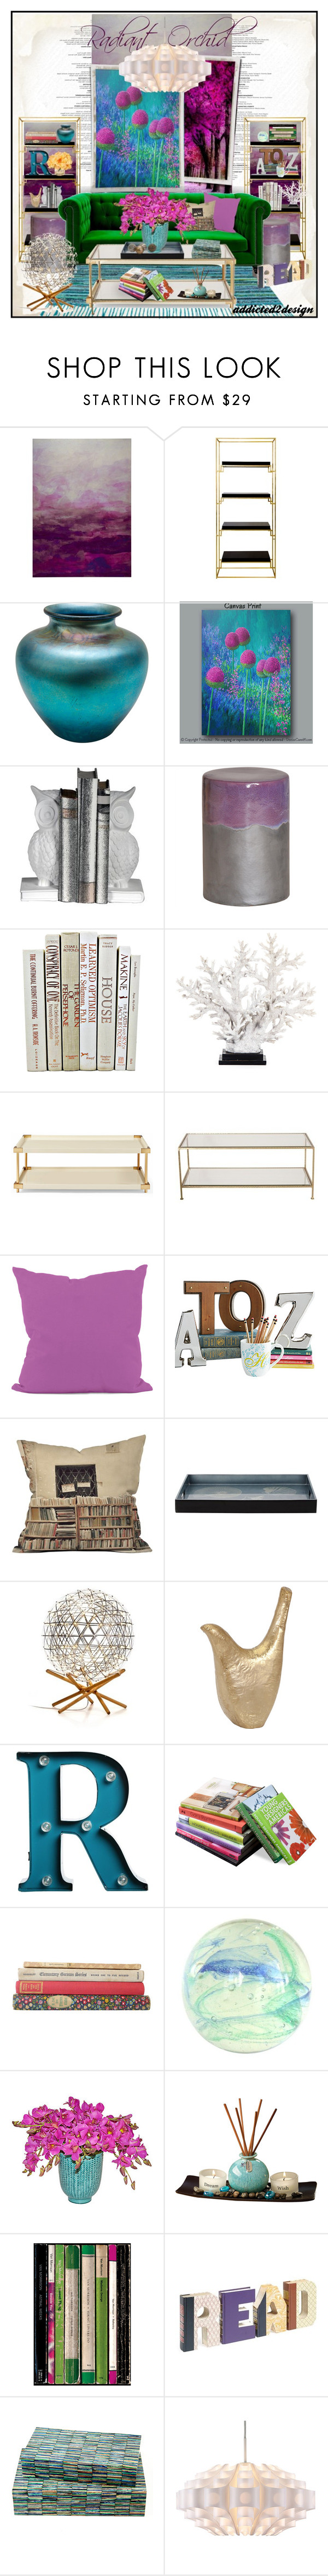 """""""..Book Worm.."""" by addicted2design ❤ liked on Polyvore featuring interior, interiors, interior design, home, home decor, interior decorating, Worlds Away, Steuben, Emissary and e by design"""